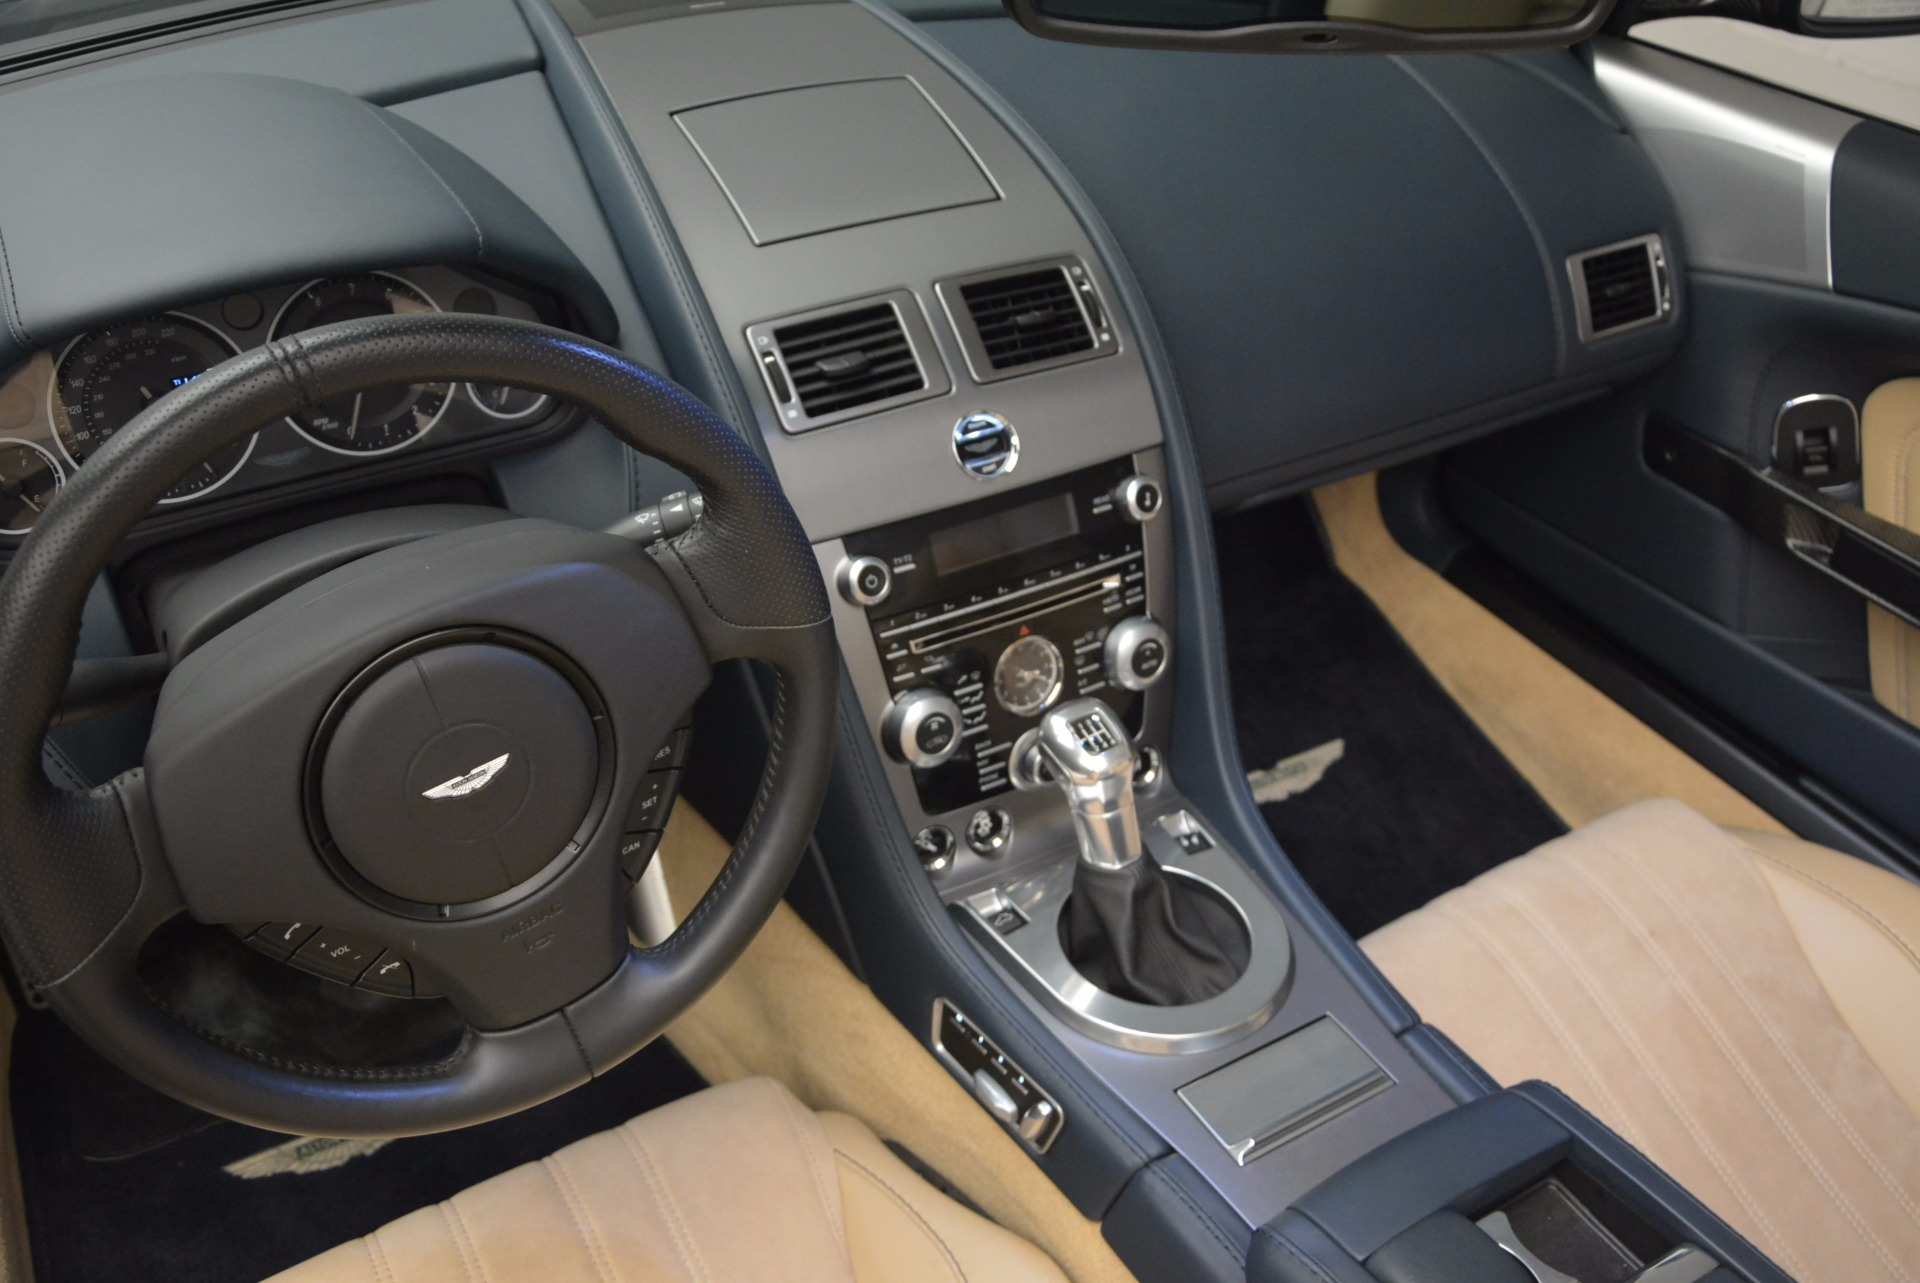 Used 2012 Aston Martin DBS Volante For Sale In Westport, CT 644_p27